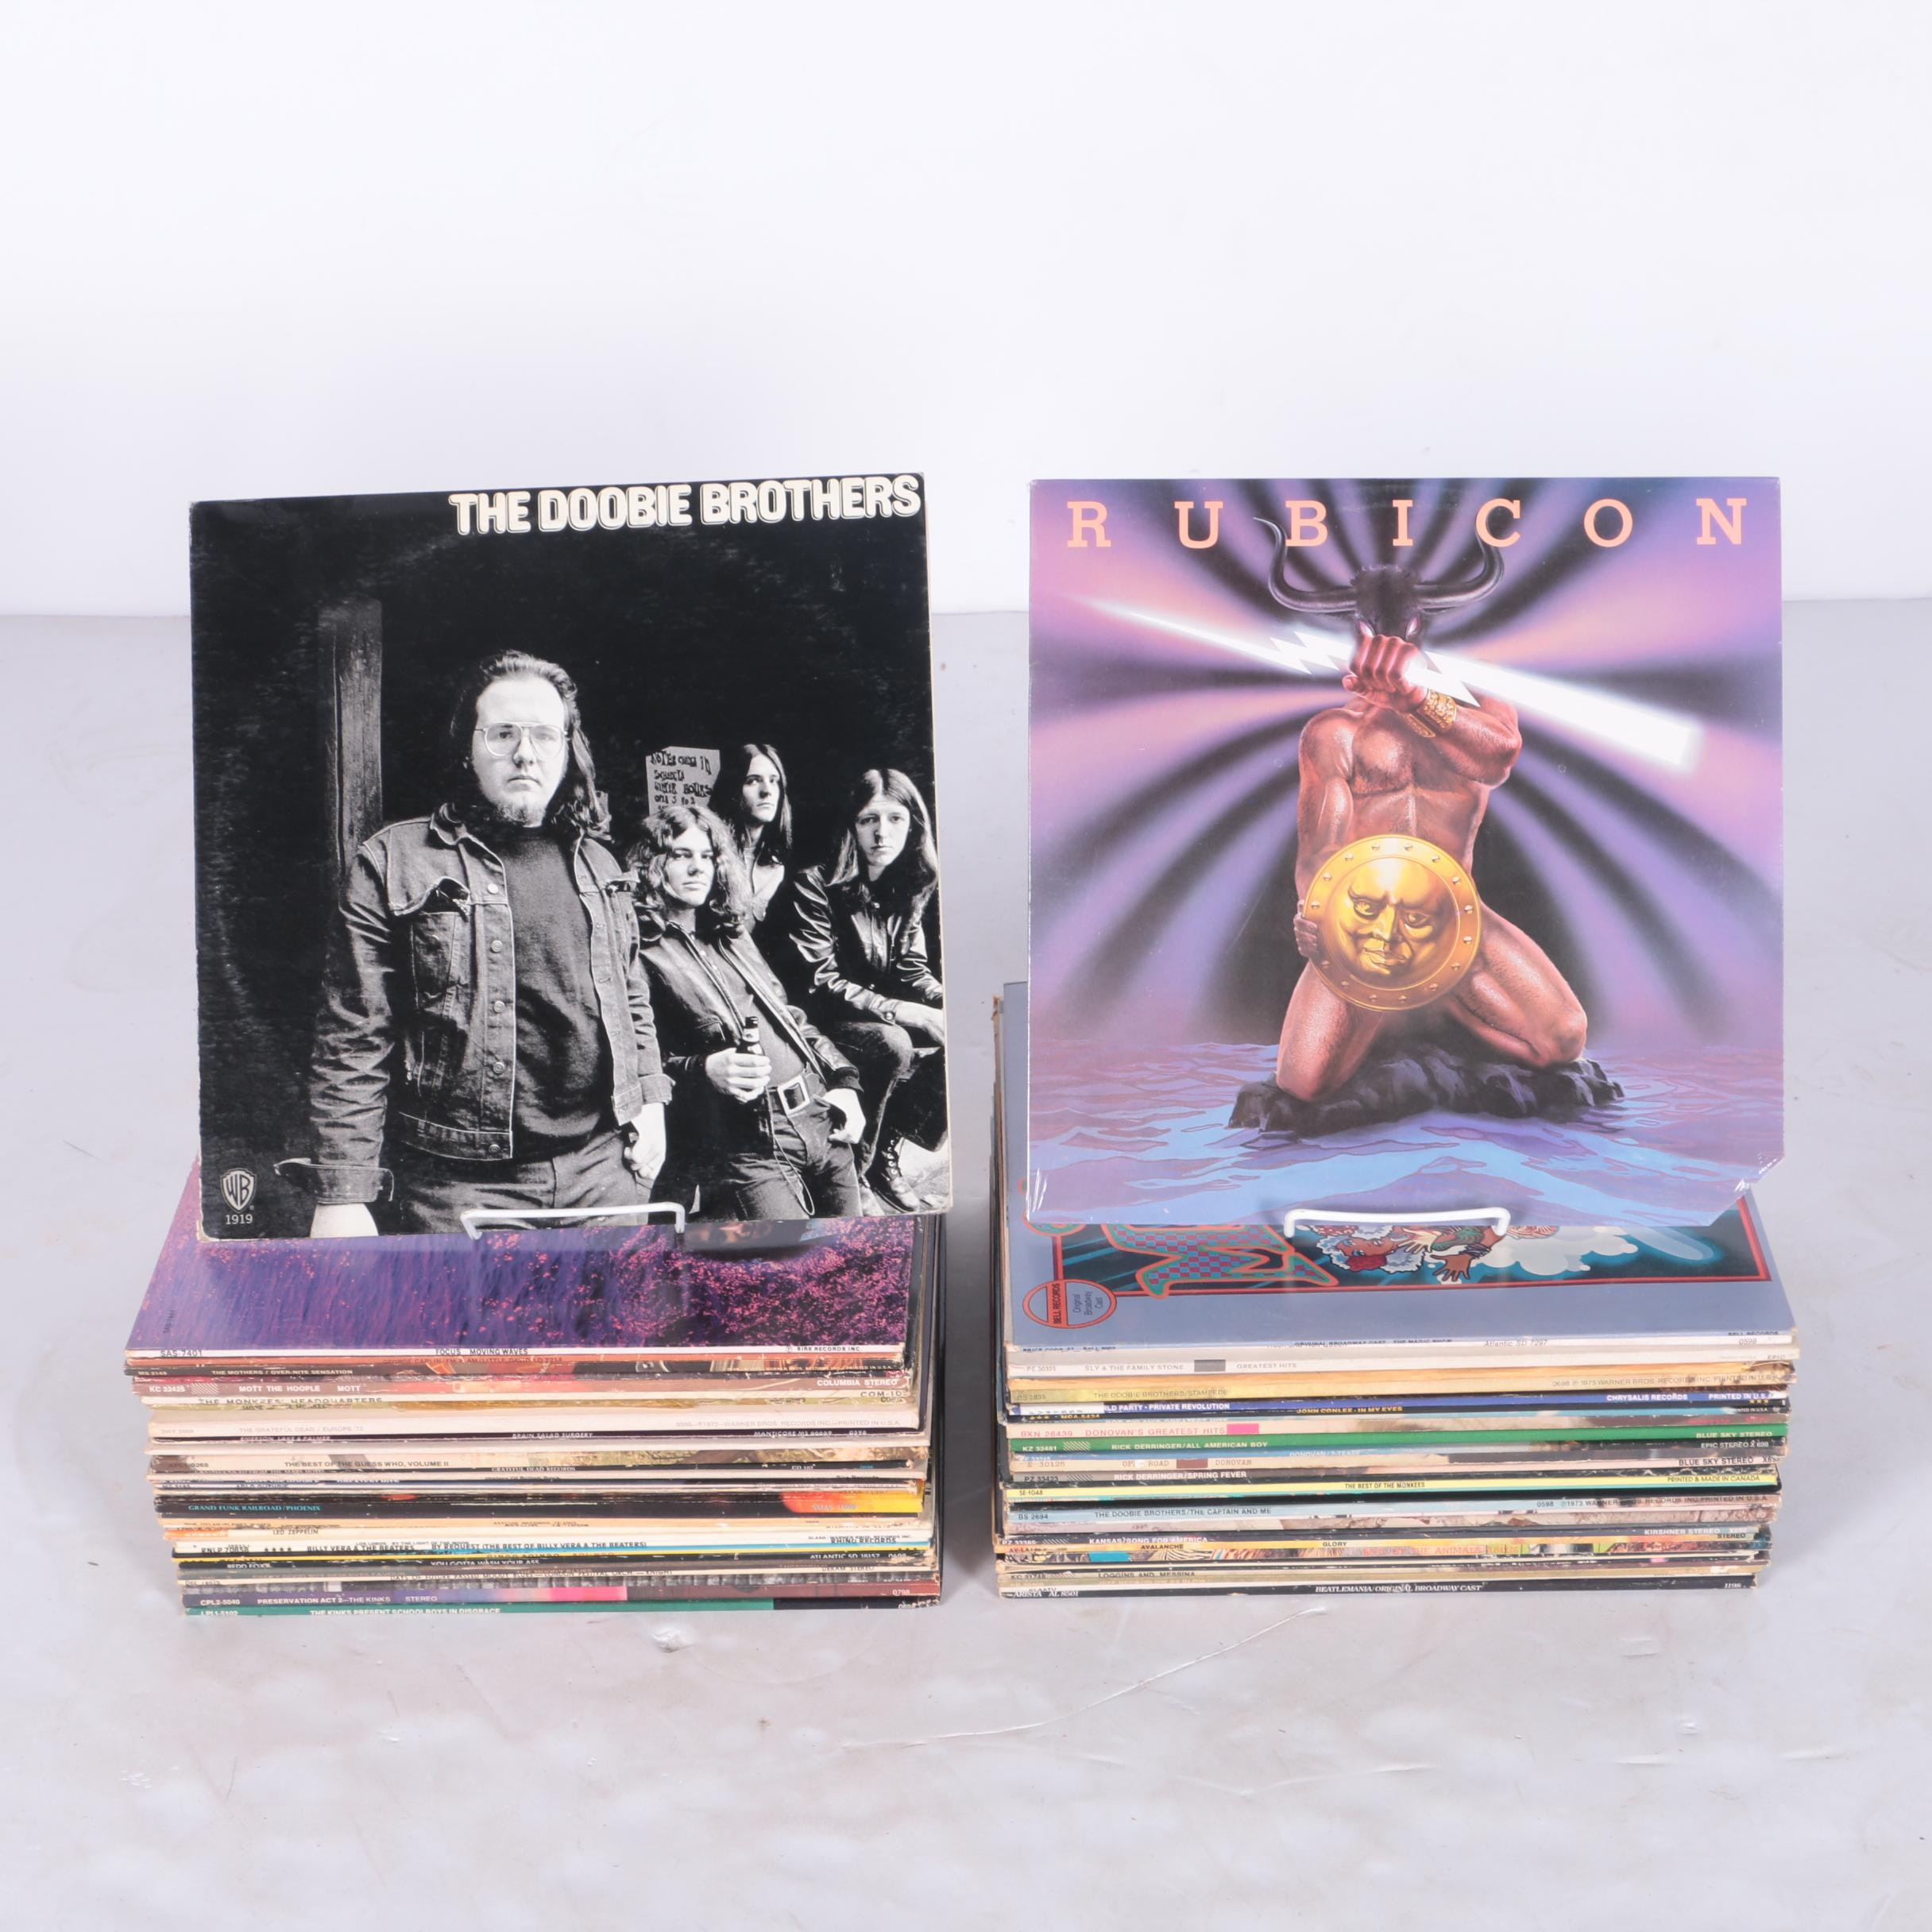 Zeppelin, Kinks, Guess Who, Grateful Dead, Monkees, Donovan, and Other LPs